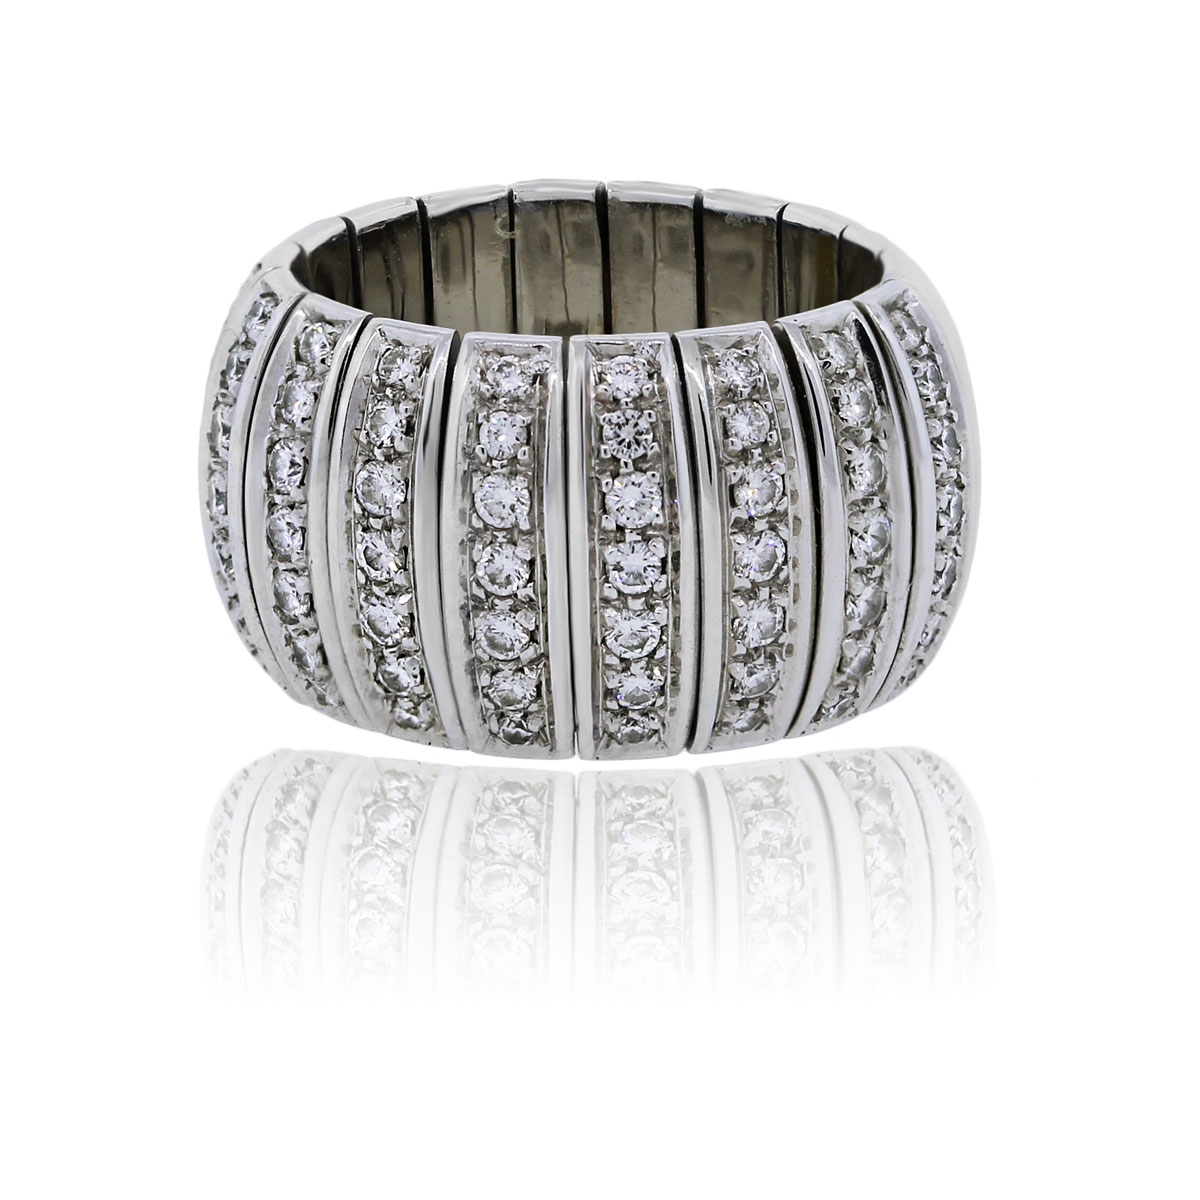 You are viewing this 18k White Gold Multi Row Diamond Cocktail Ring!